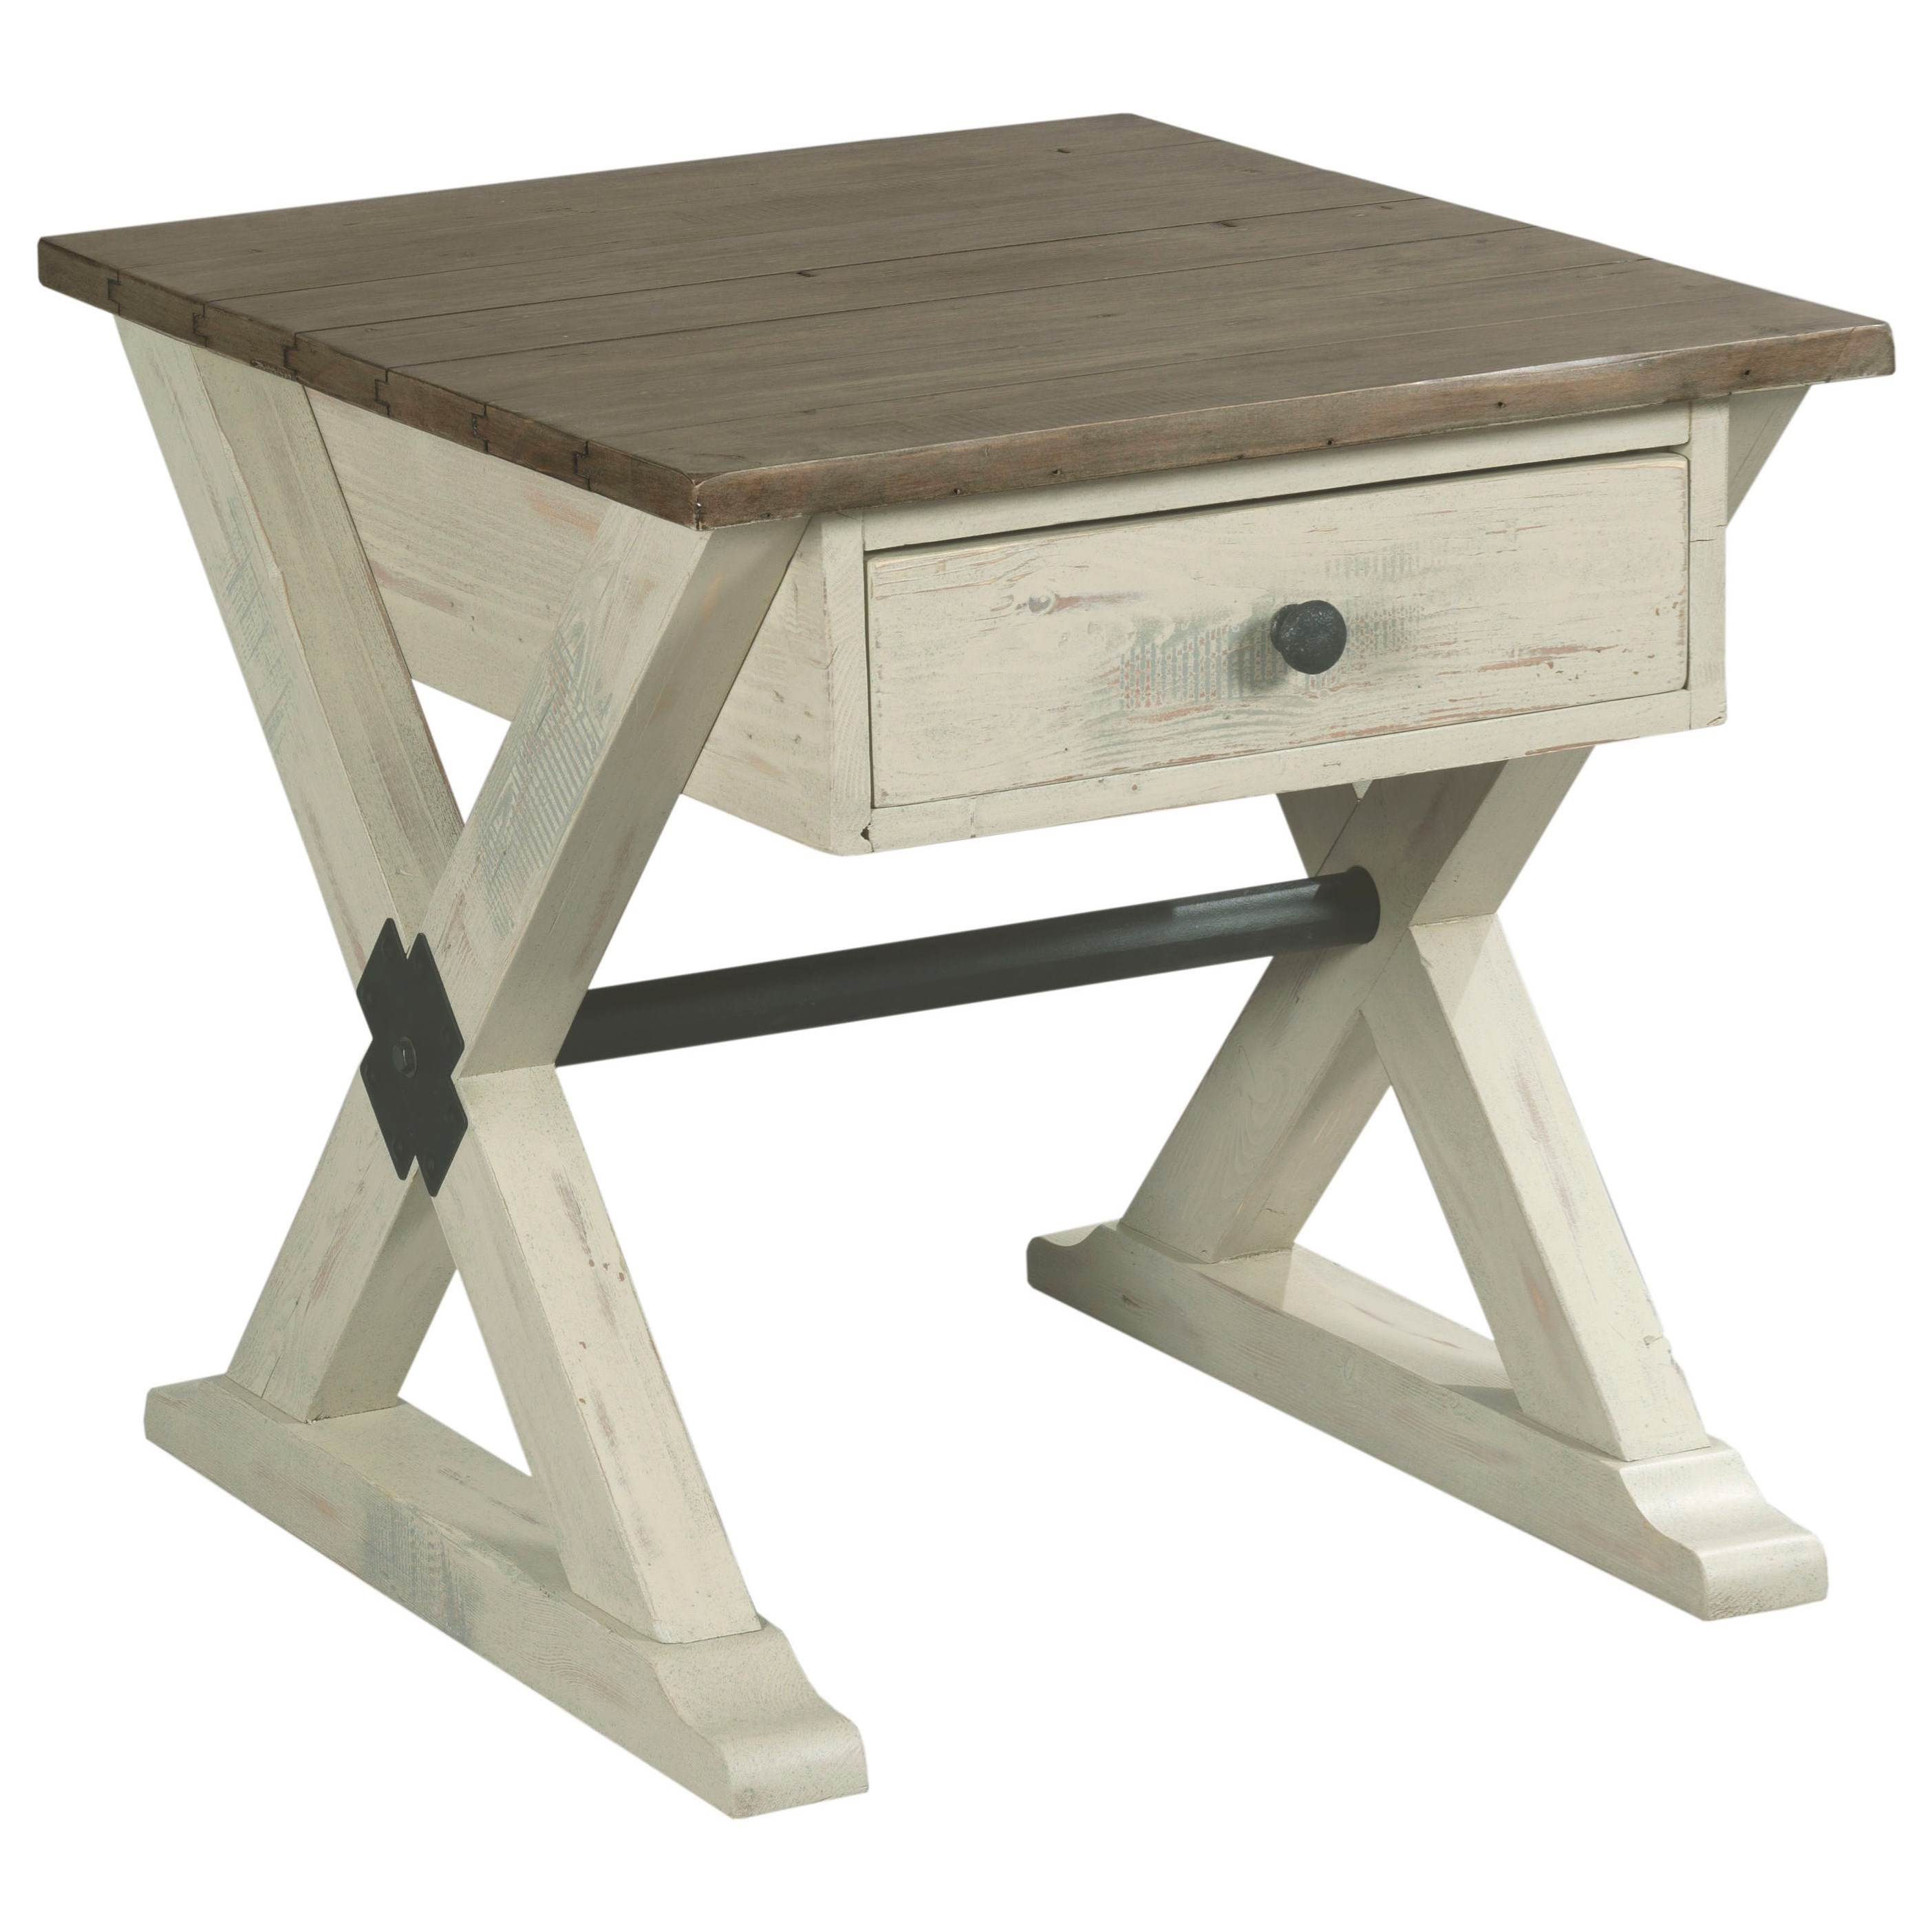 Reclamation Place                                  End Table by Hammary at HomeWorld Furniture